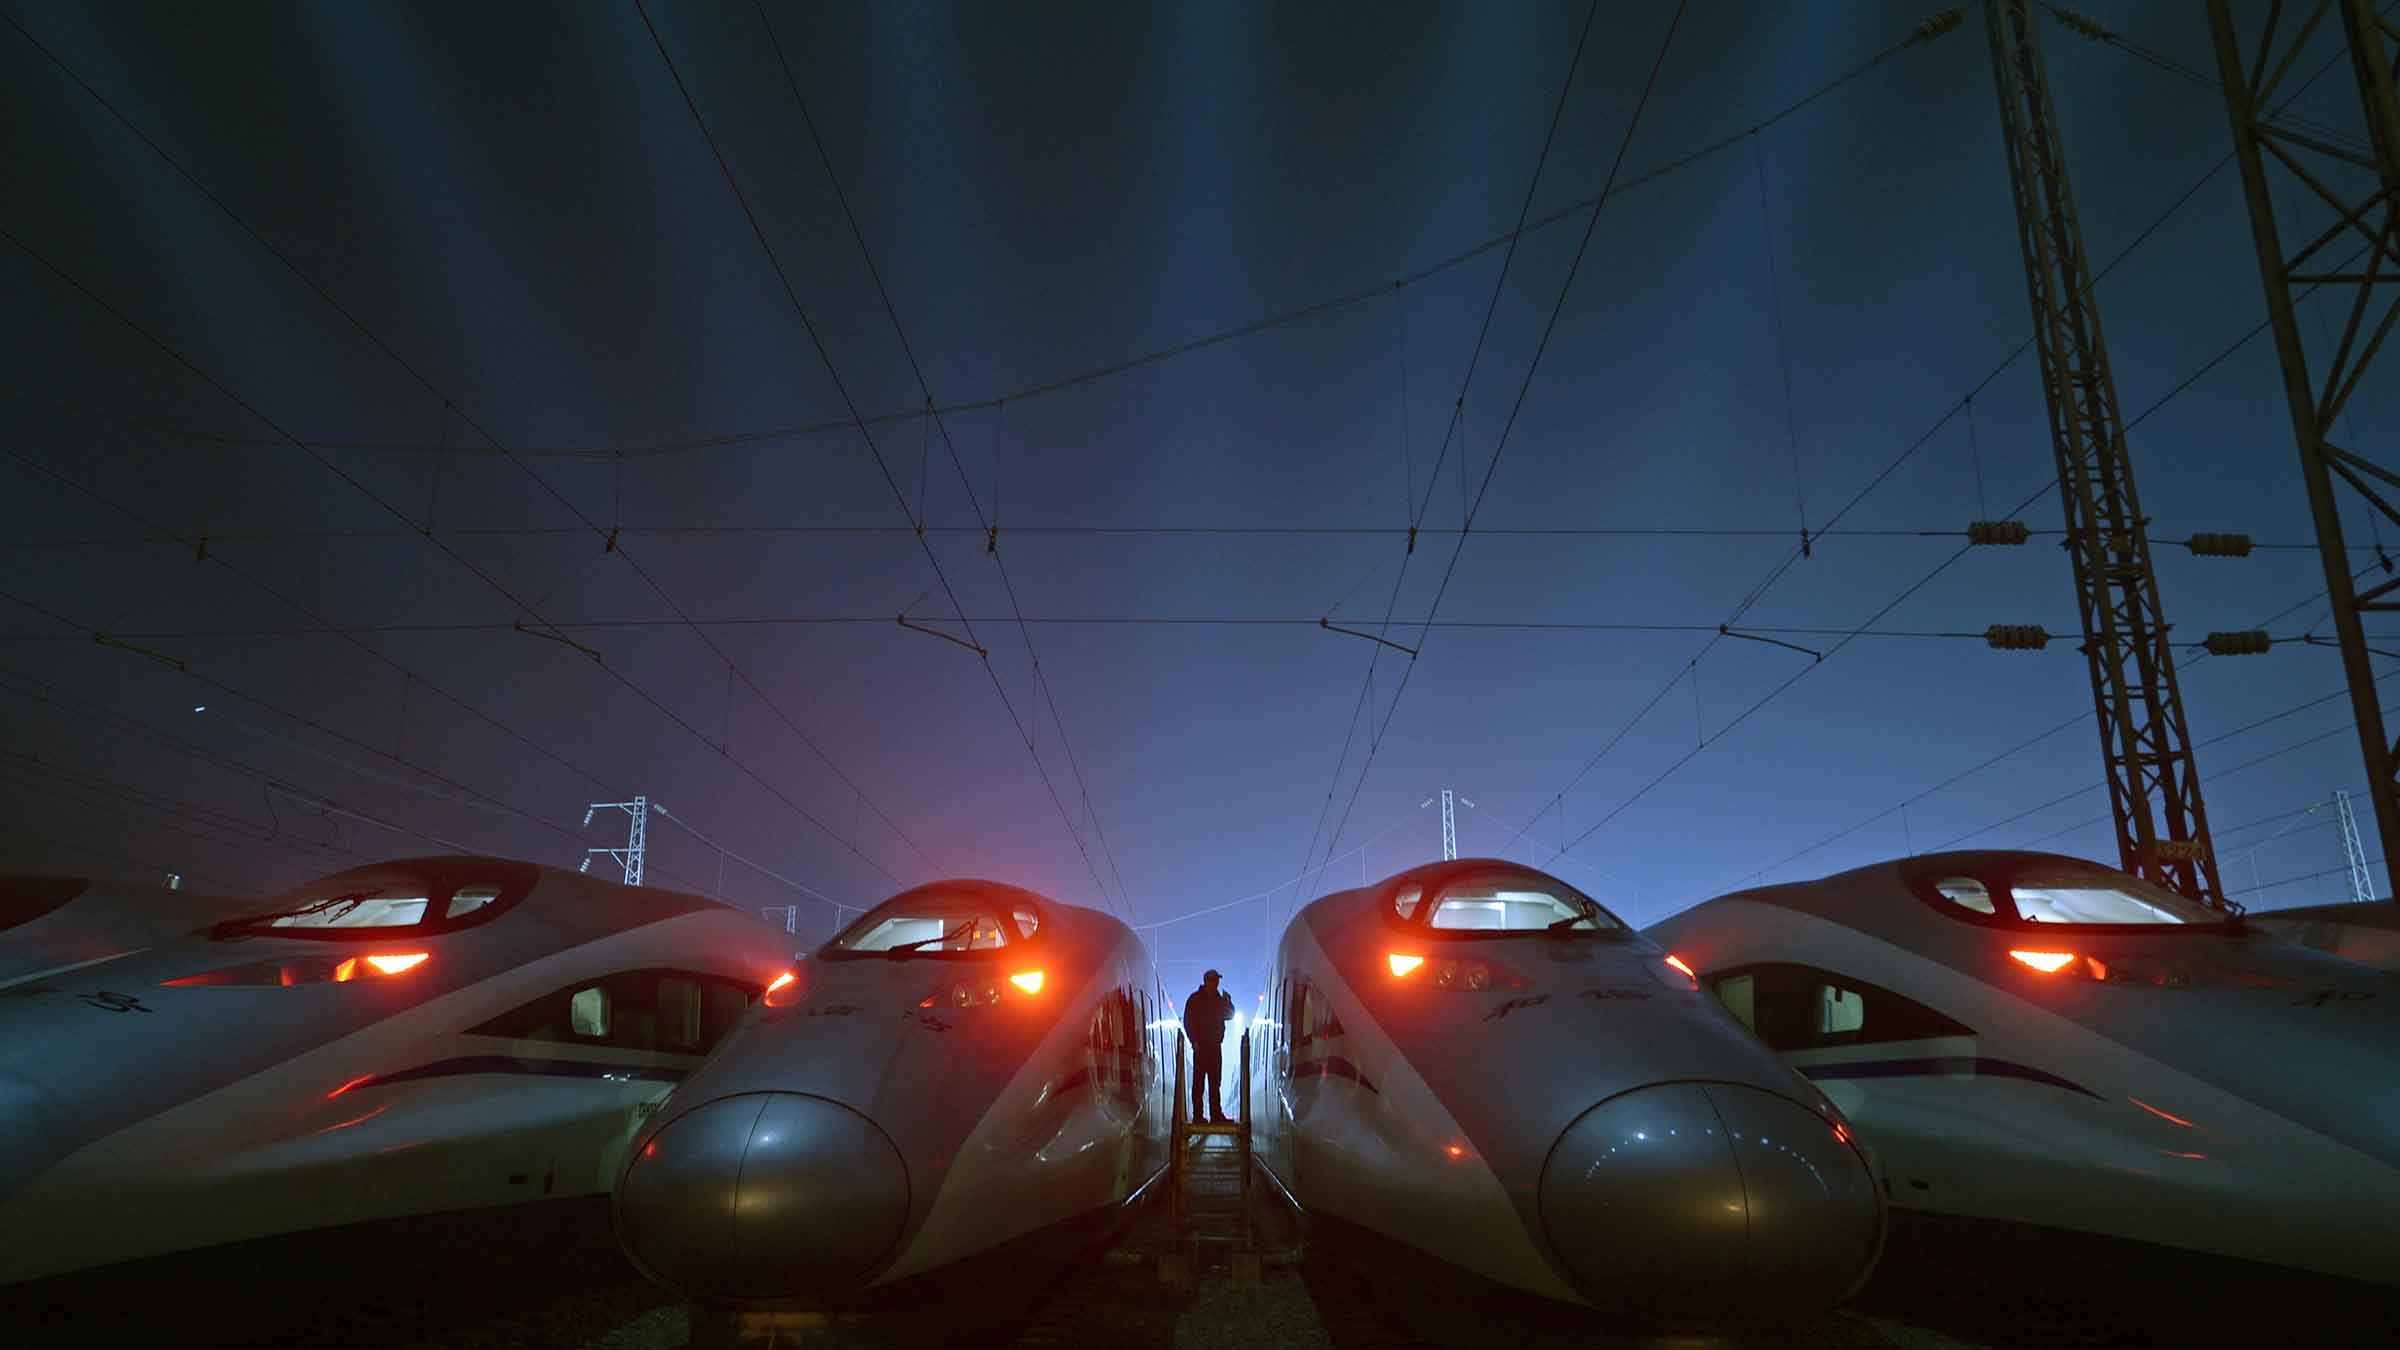 A worker stands among CRH Harmony bullet trains at a high-speed train maintenance base in Wuhan